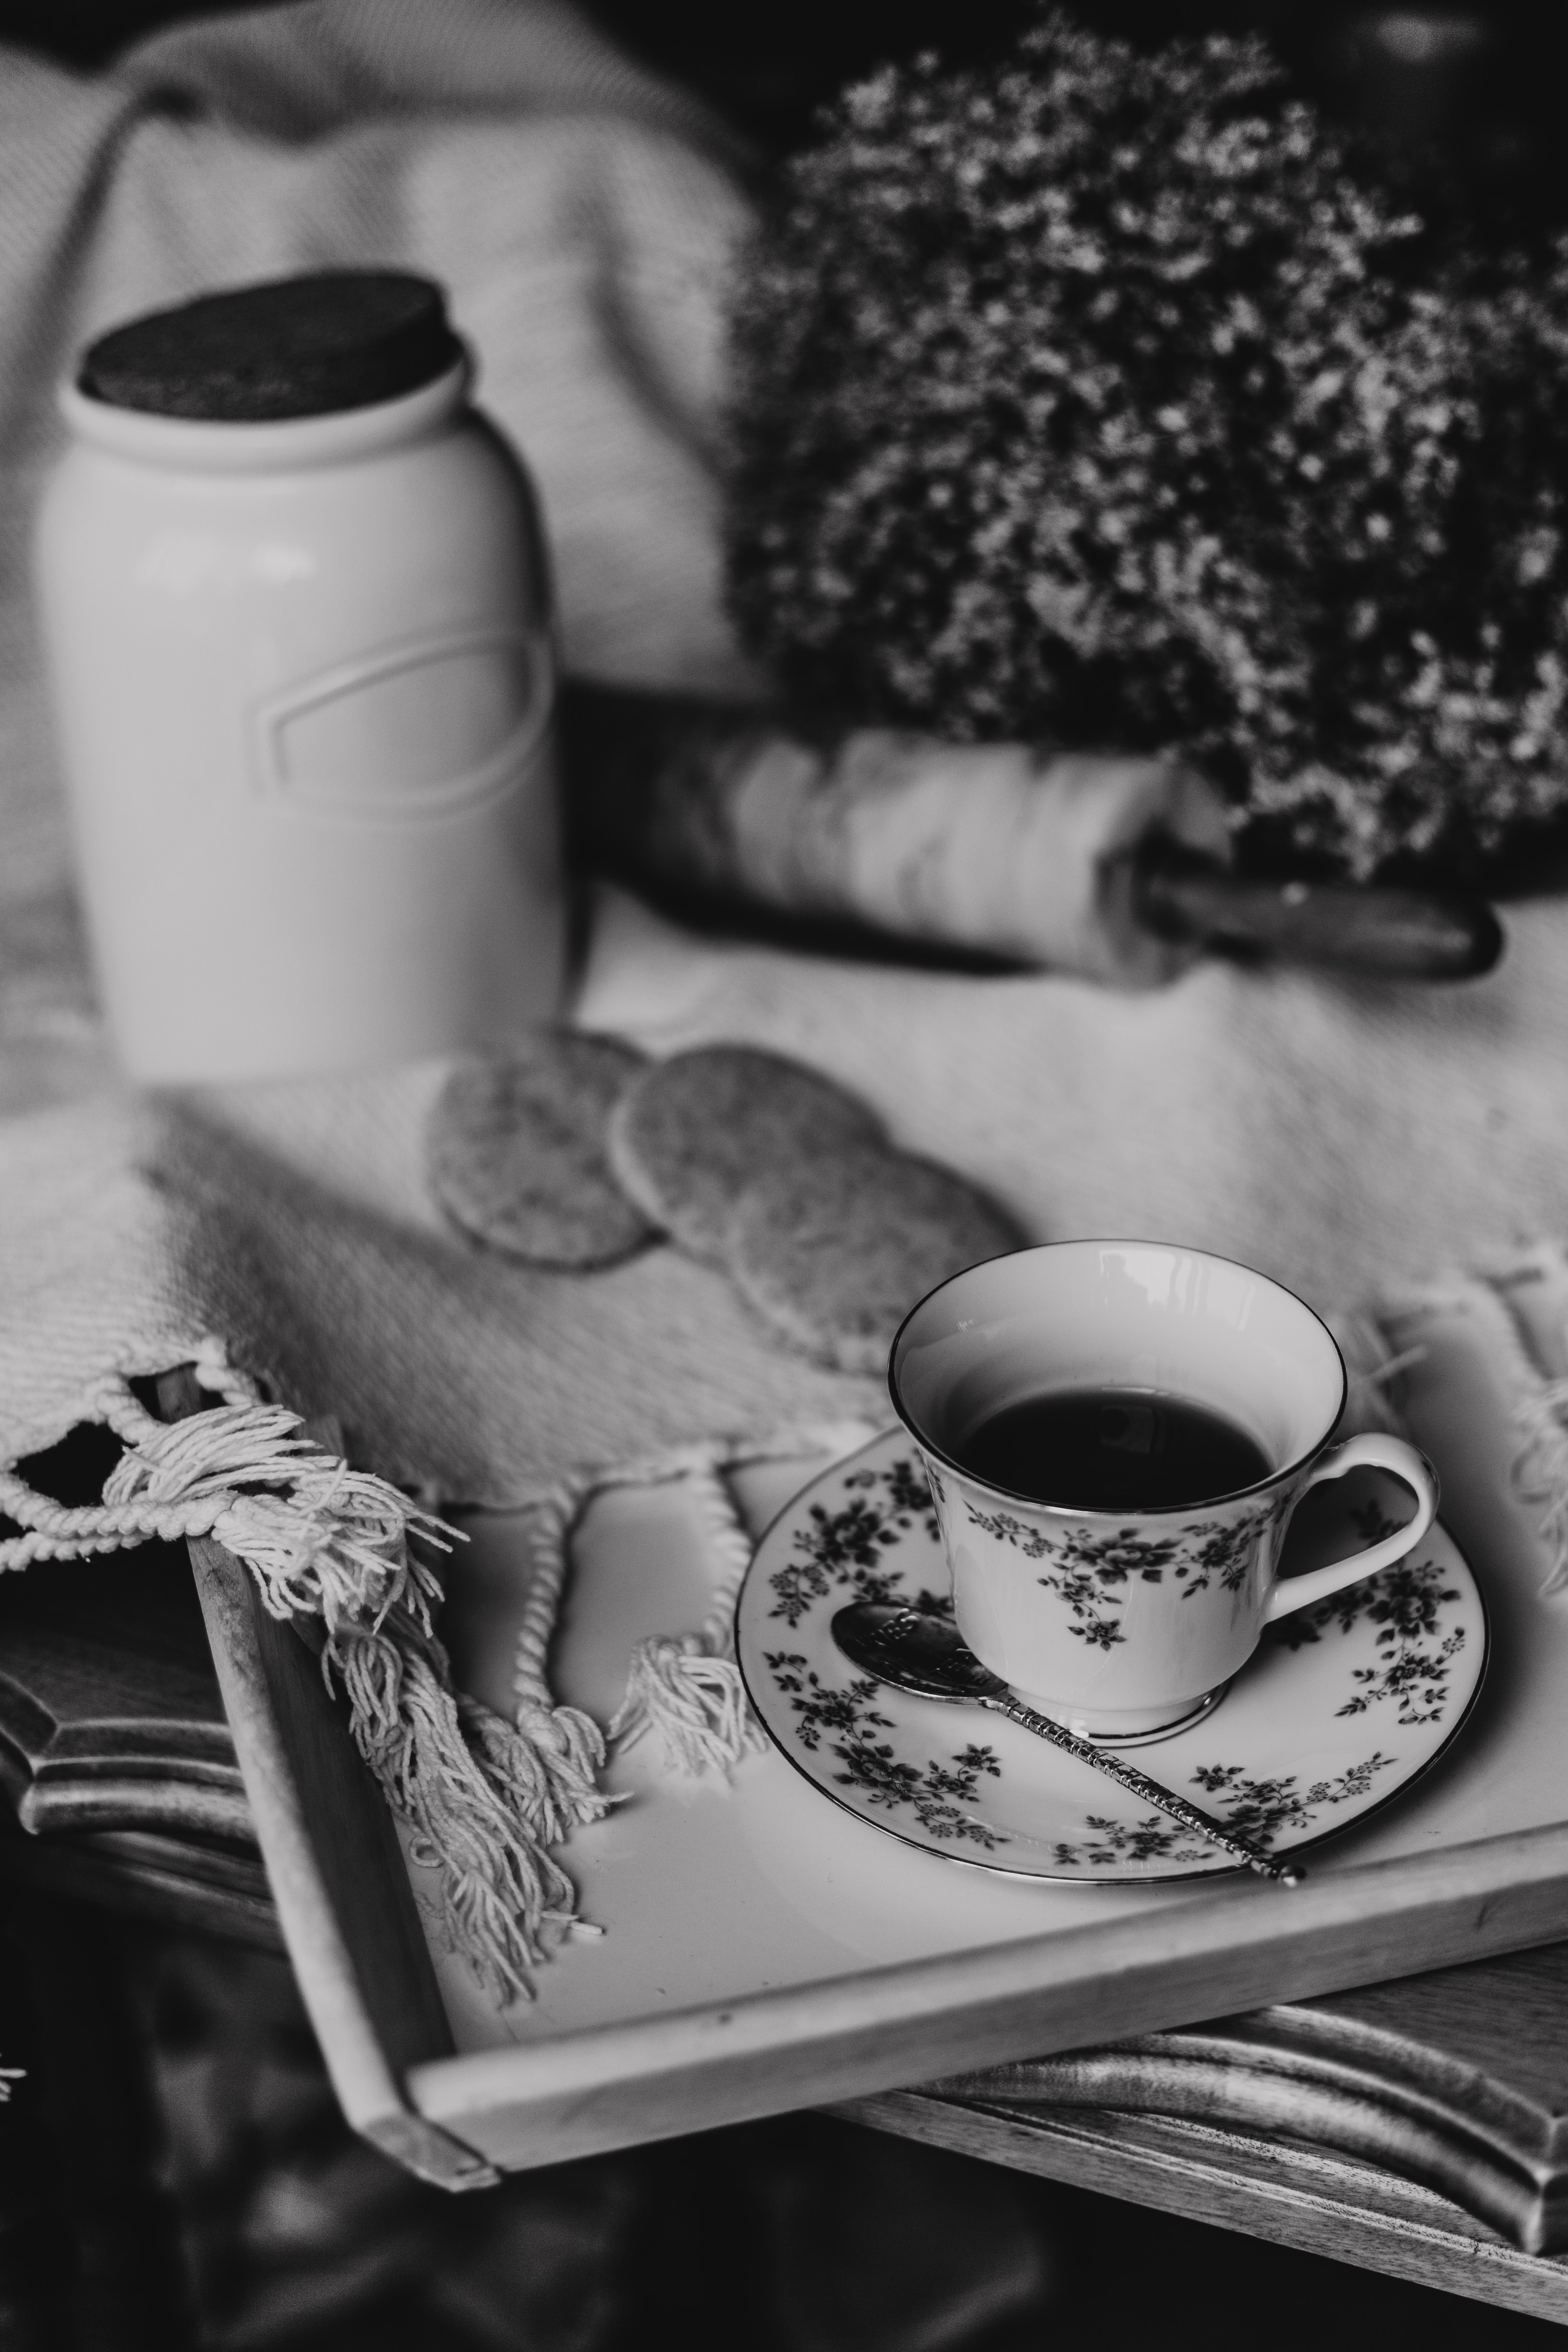 grayscale photography of teacup on a tray near cookies and jar